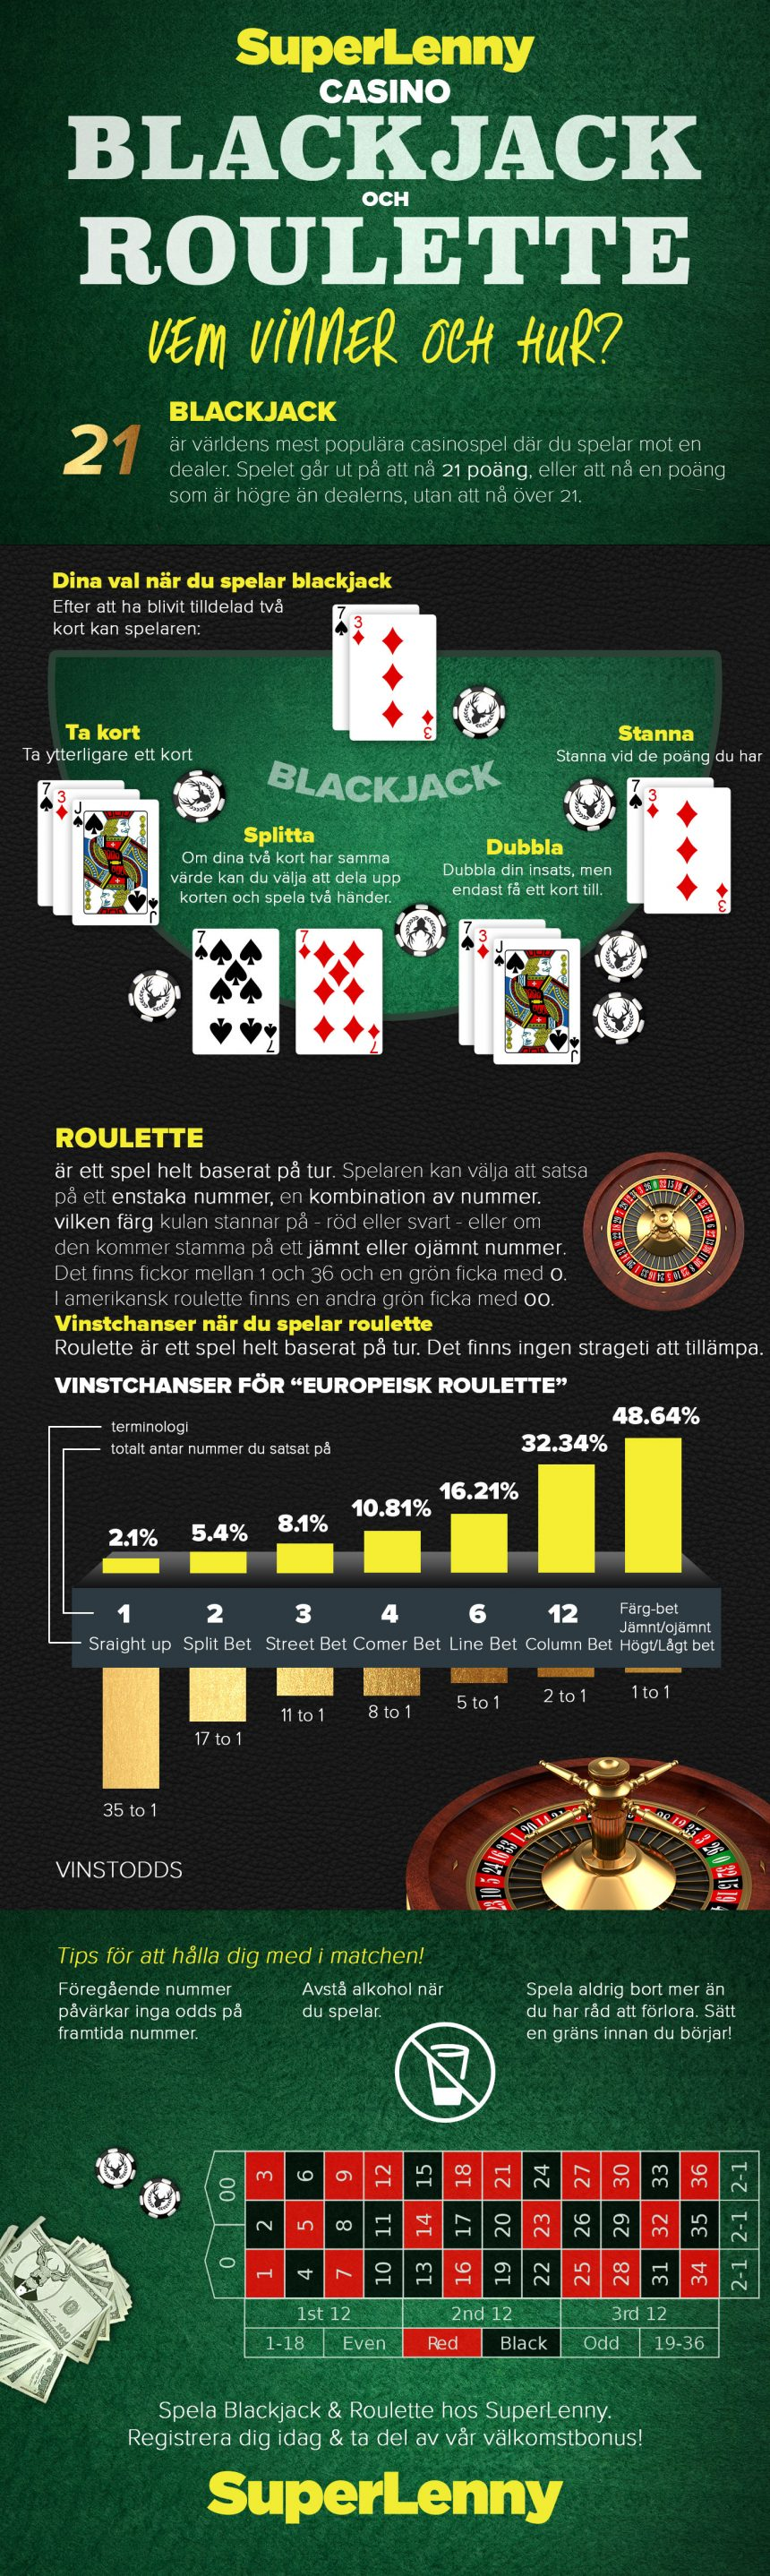 blackjack information